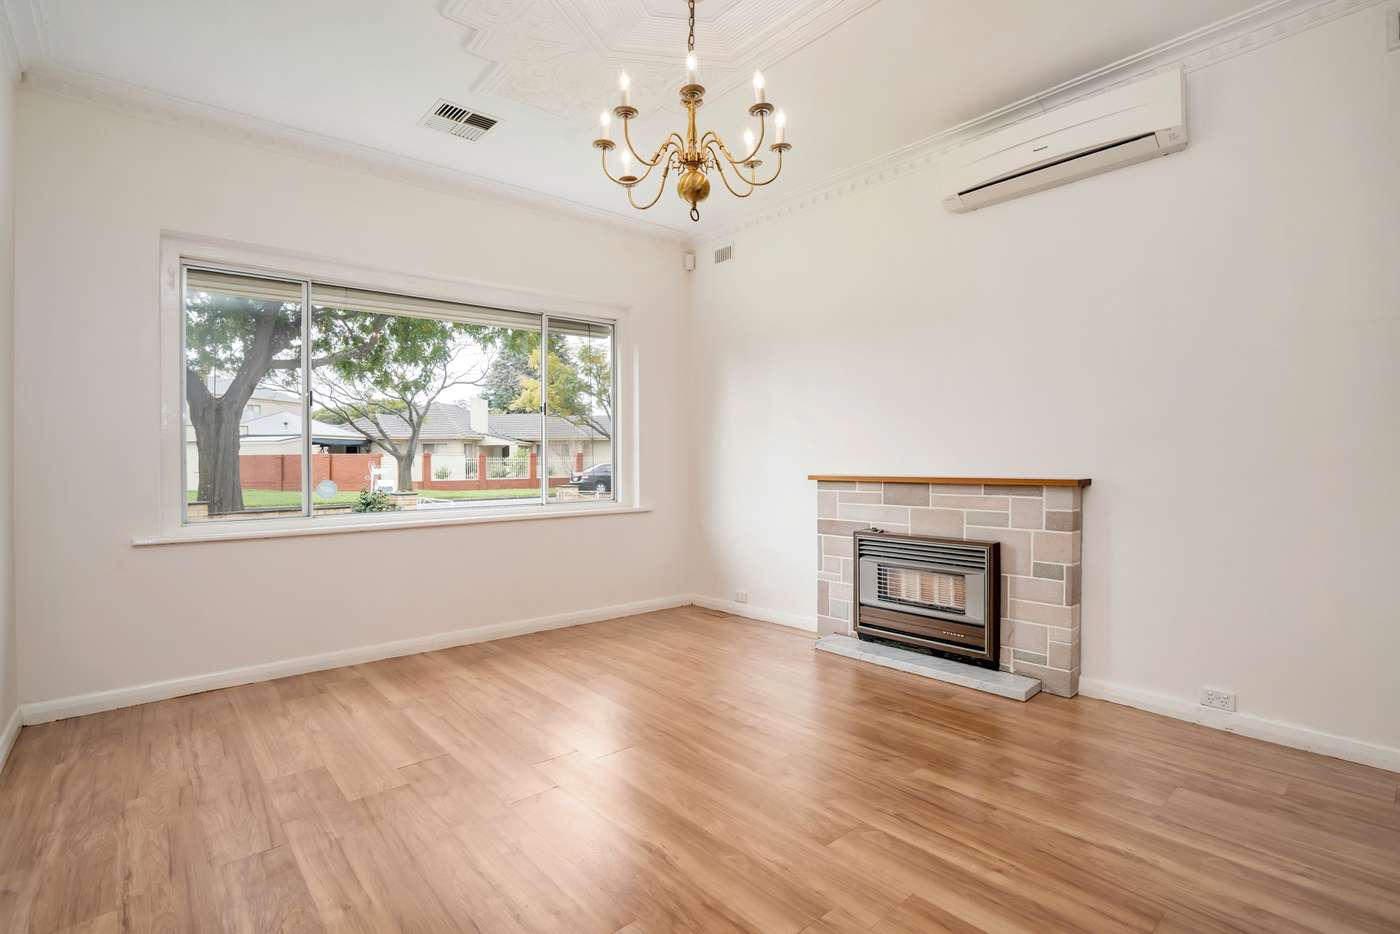 Fifth view of Homely house listing, 19 Minerva Crescent, Croydon Park SA 5008